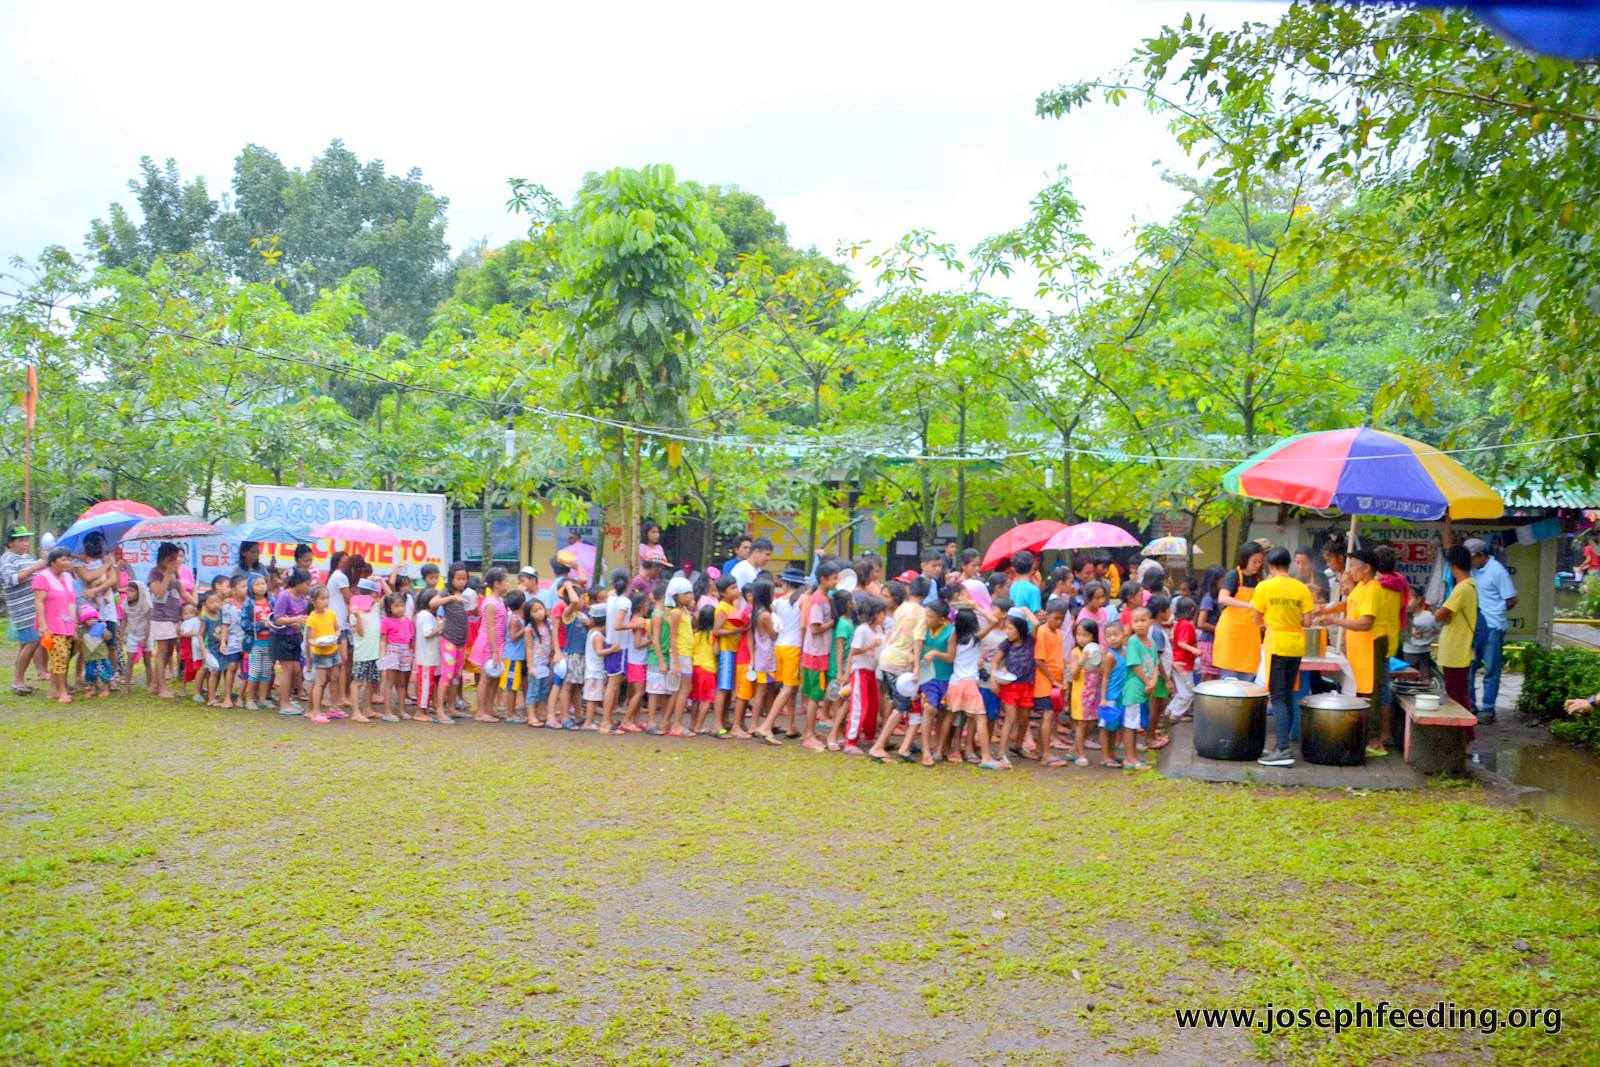 http://josephfeeding.org/disaster-relief/mayon-relief-outreach-taladong-evacuation-center/